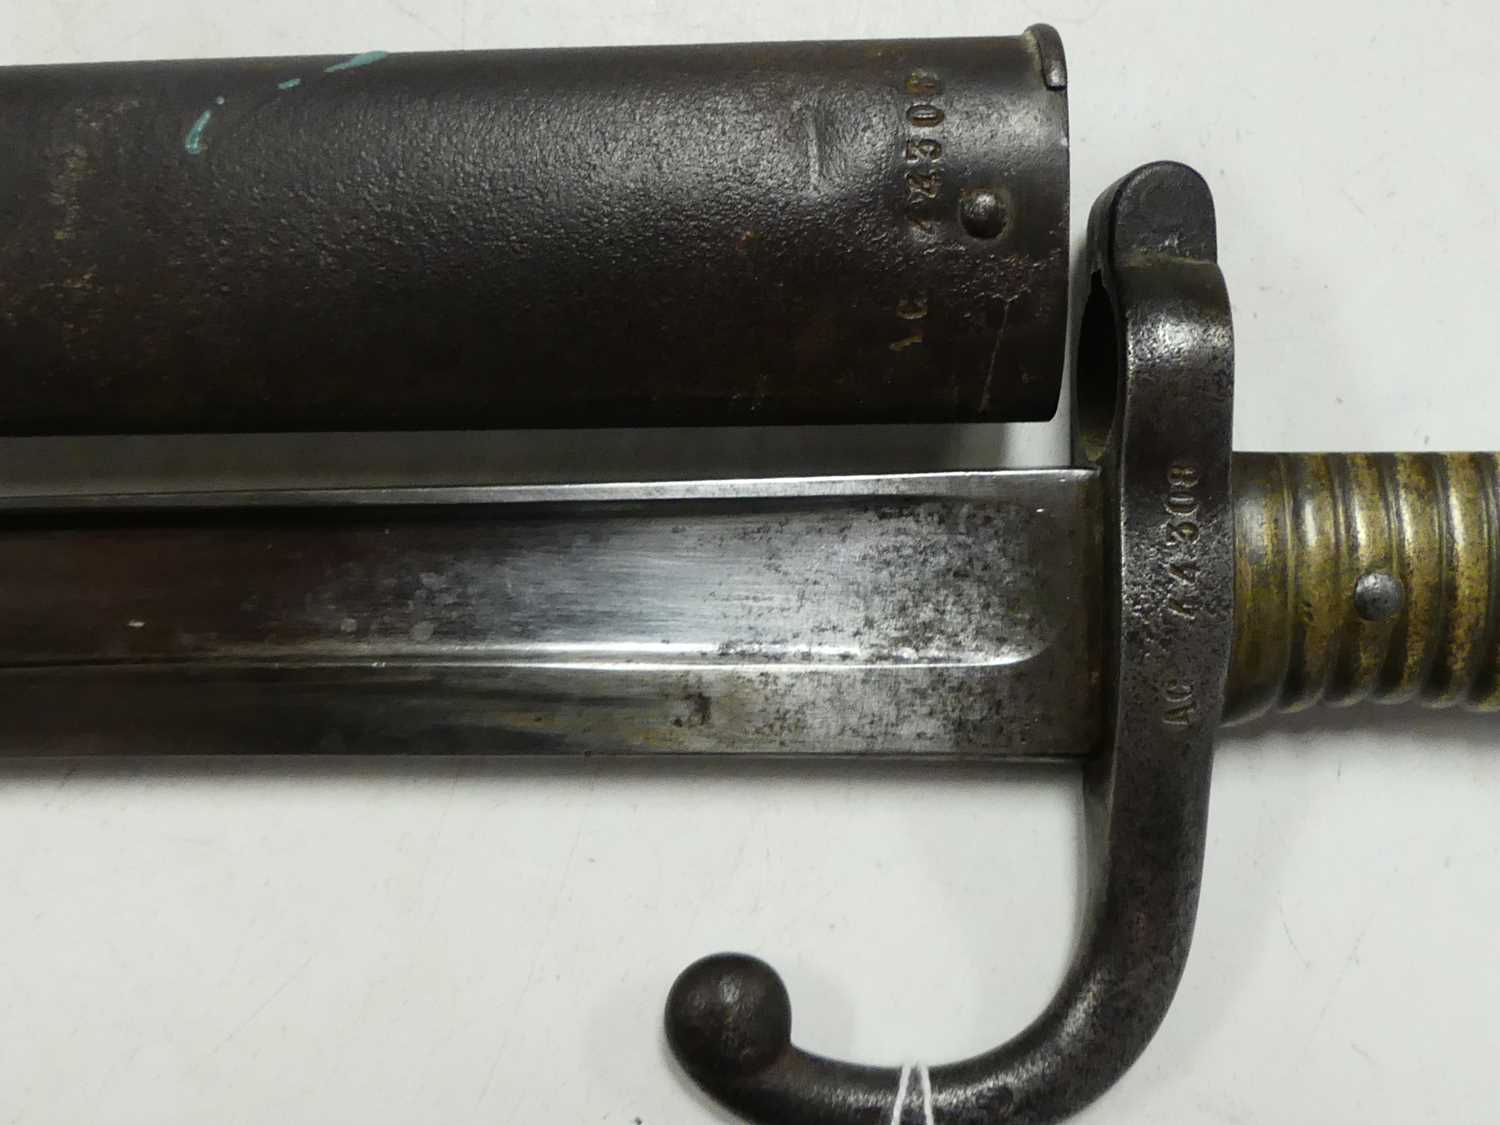 A French model 1866 Chassepot bayonet, the 57cm Yataghan shaped blade etched to the back edge Mre d' - Image 6 of 12